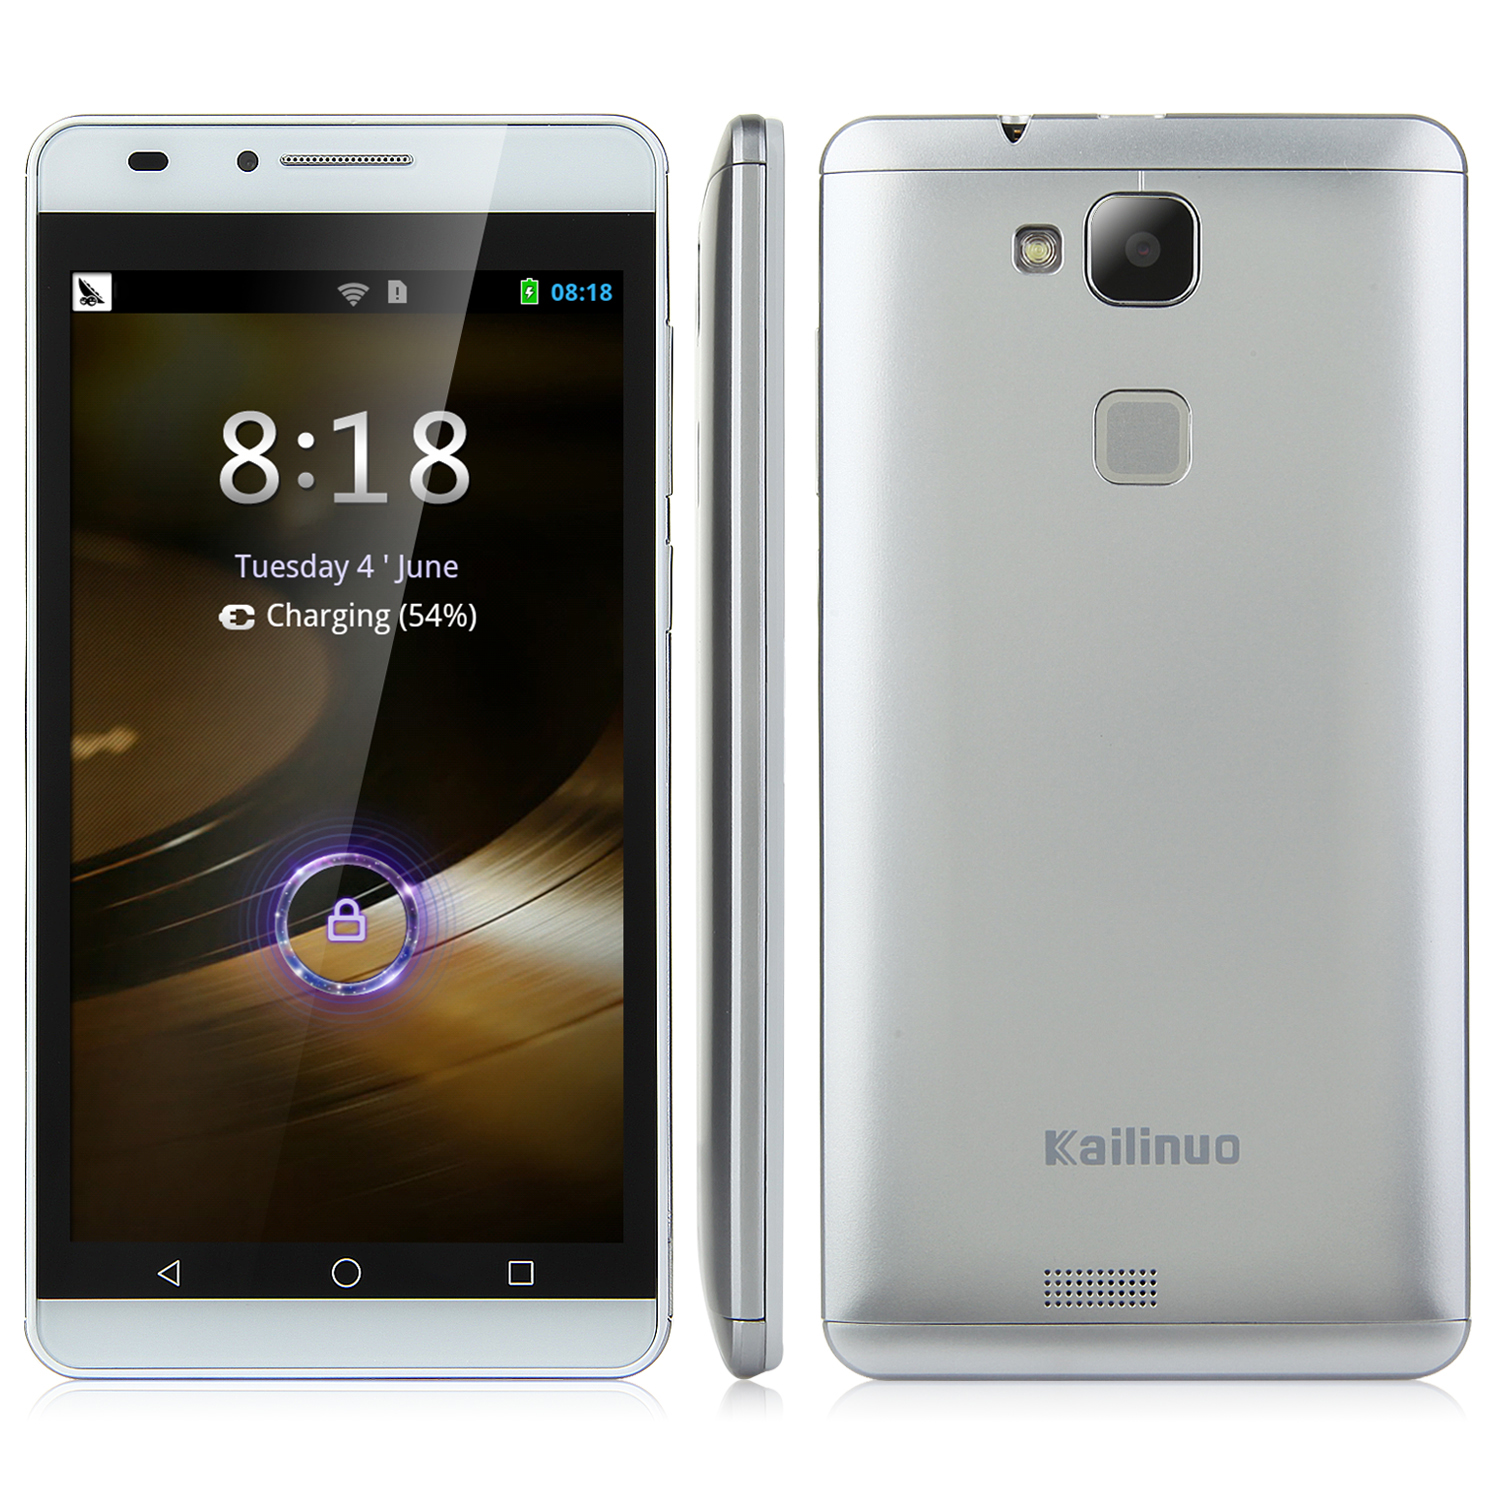 Kailinuo K27 Smartphone 5.0 Inch MTK6572M Dual Core Android 4.2 Silver